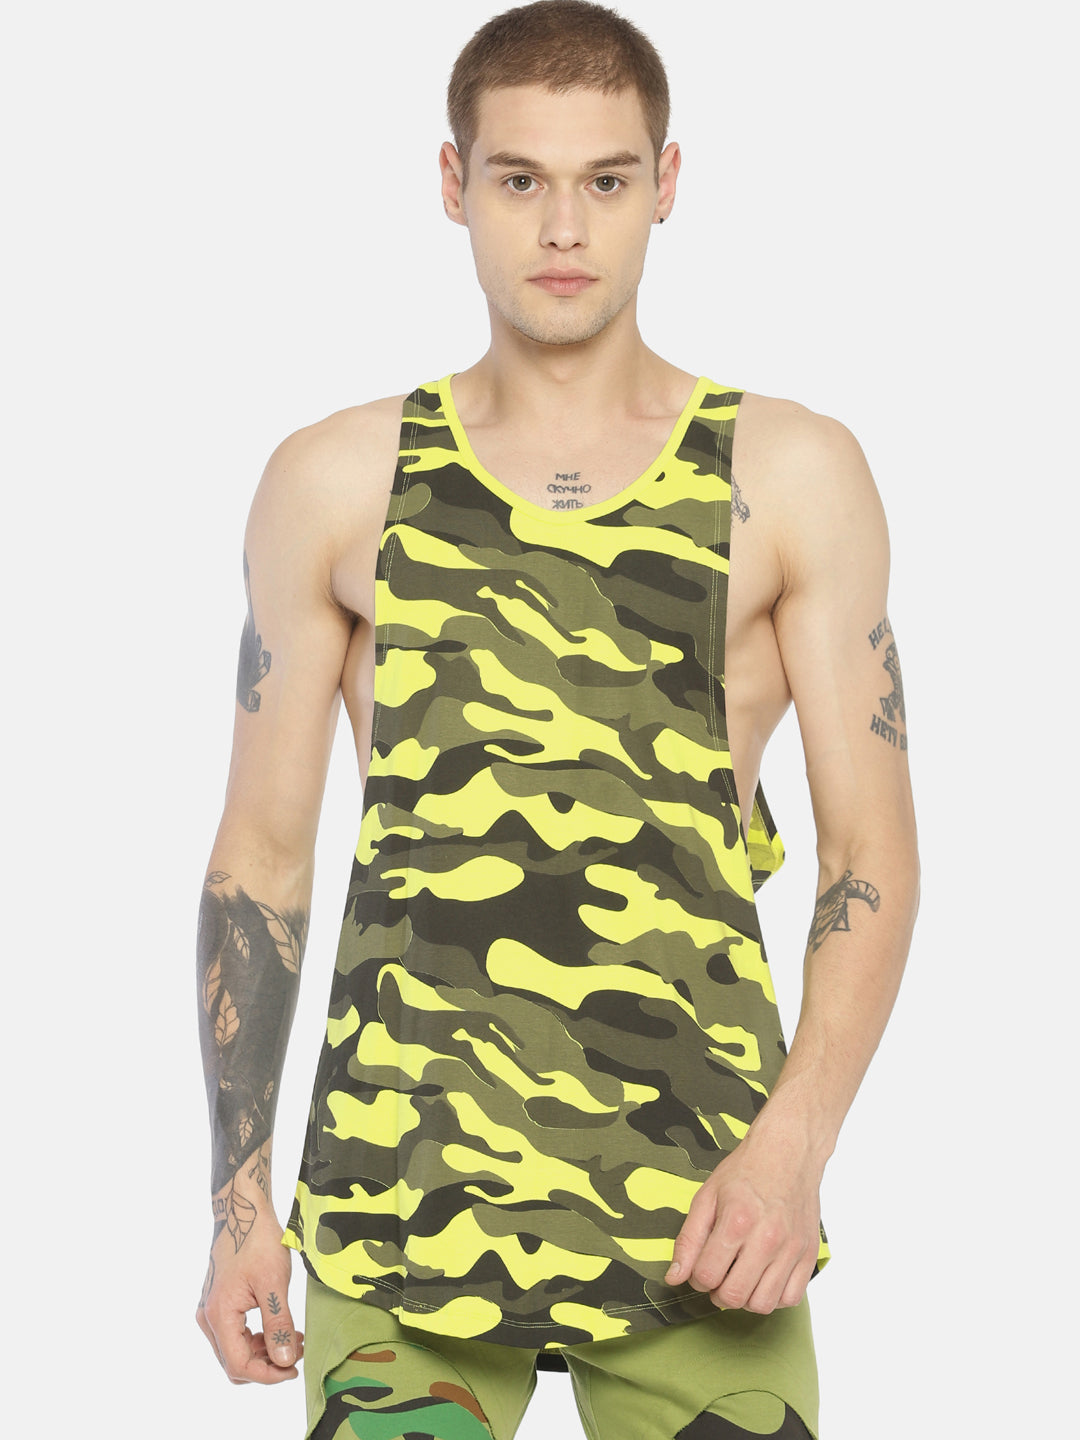 Deep Armhole Round Neck Sleeveless Tshirt With All Over Camo Print